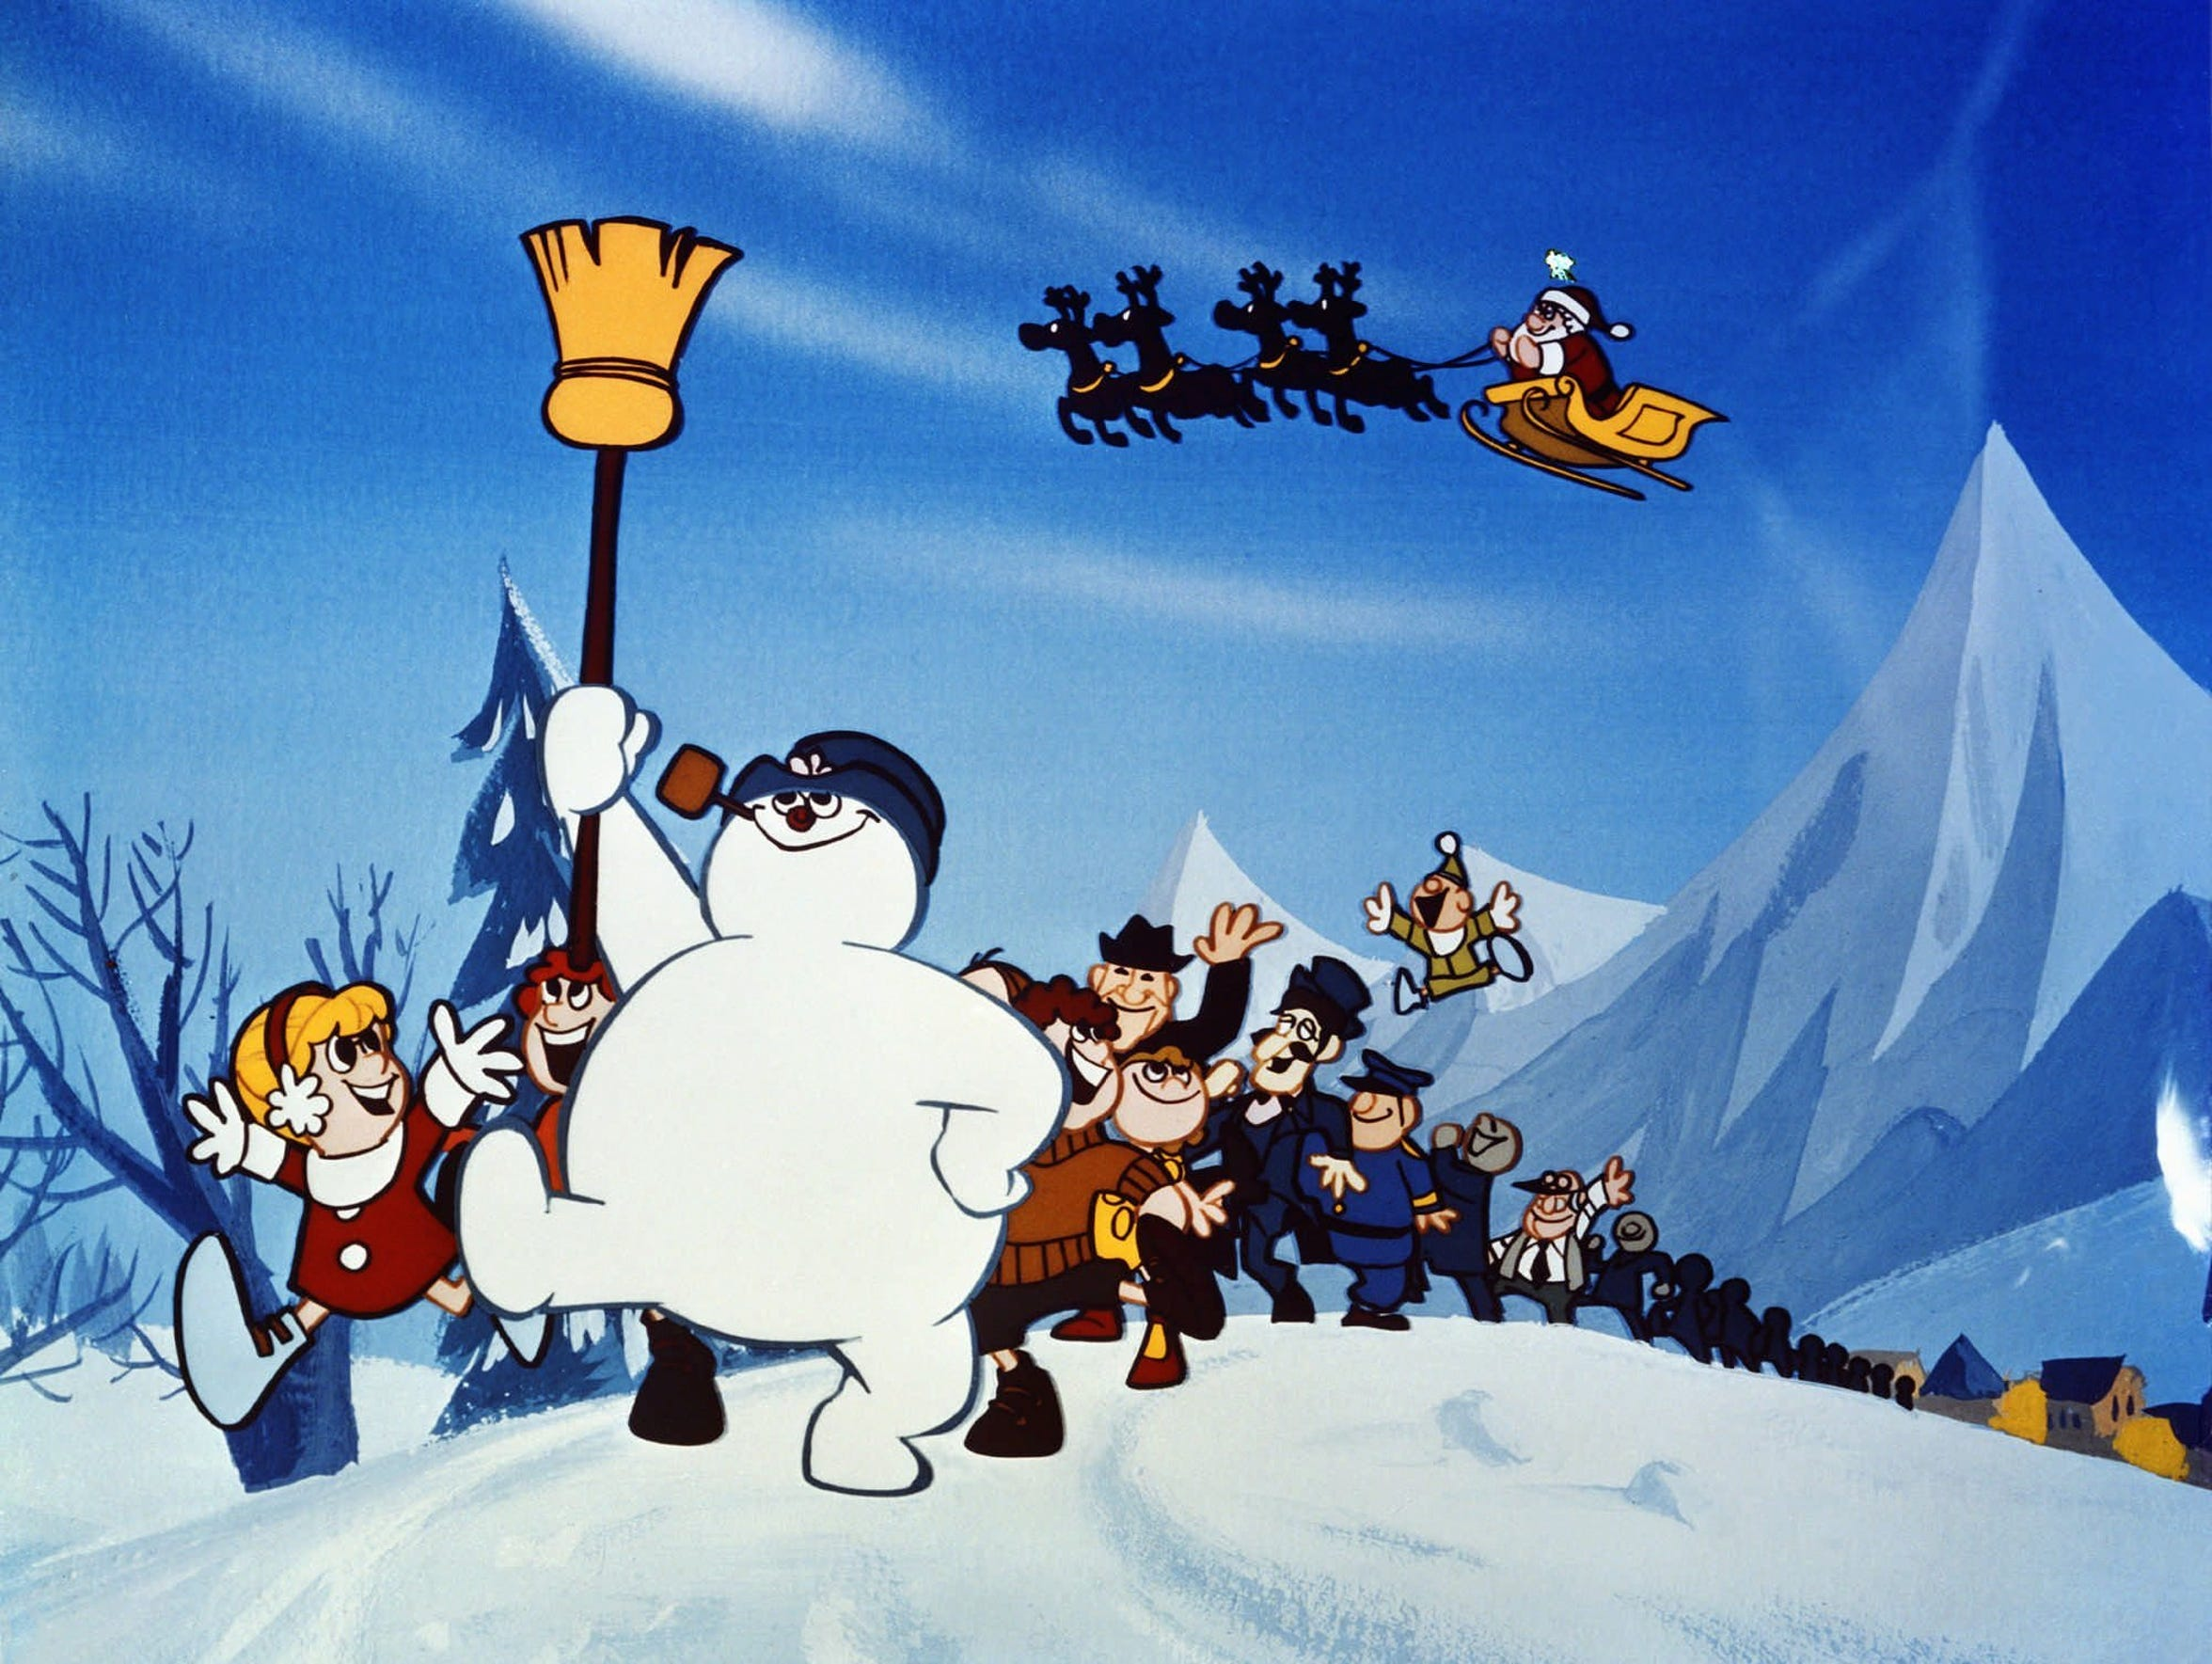 Frosty and his friends set off in search of the North